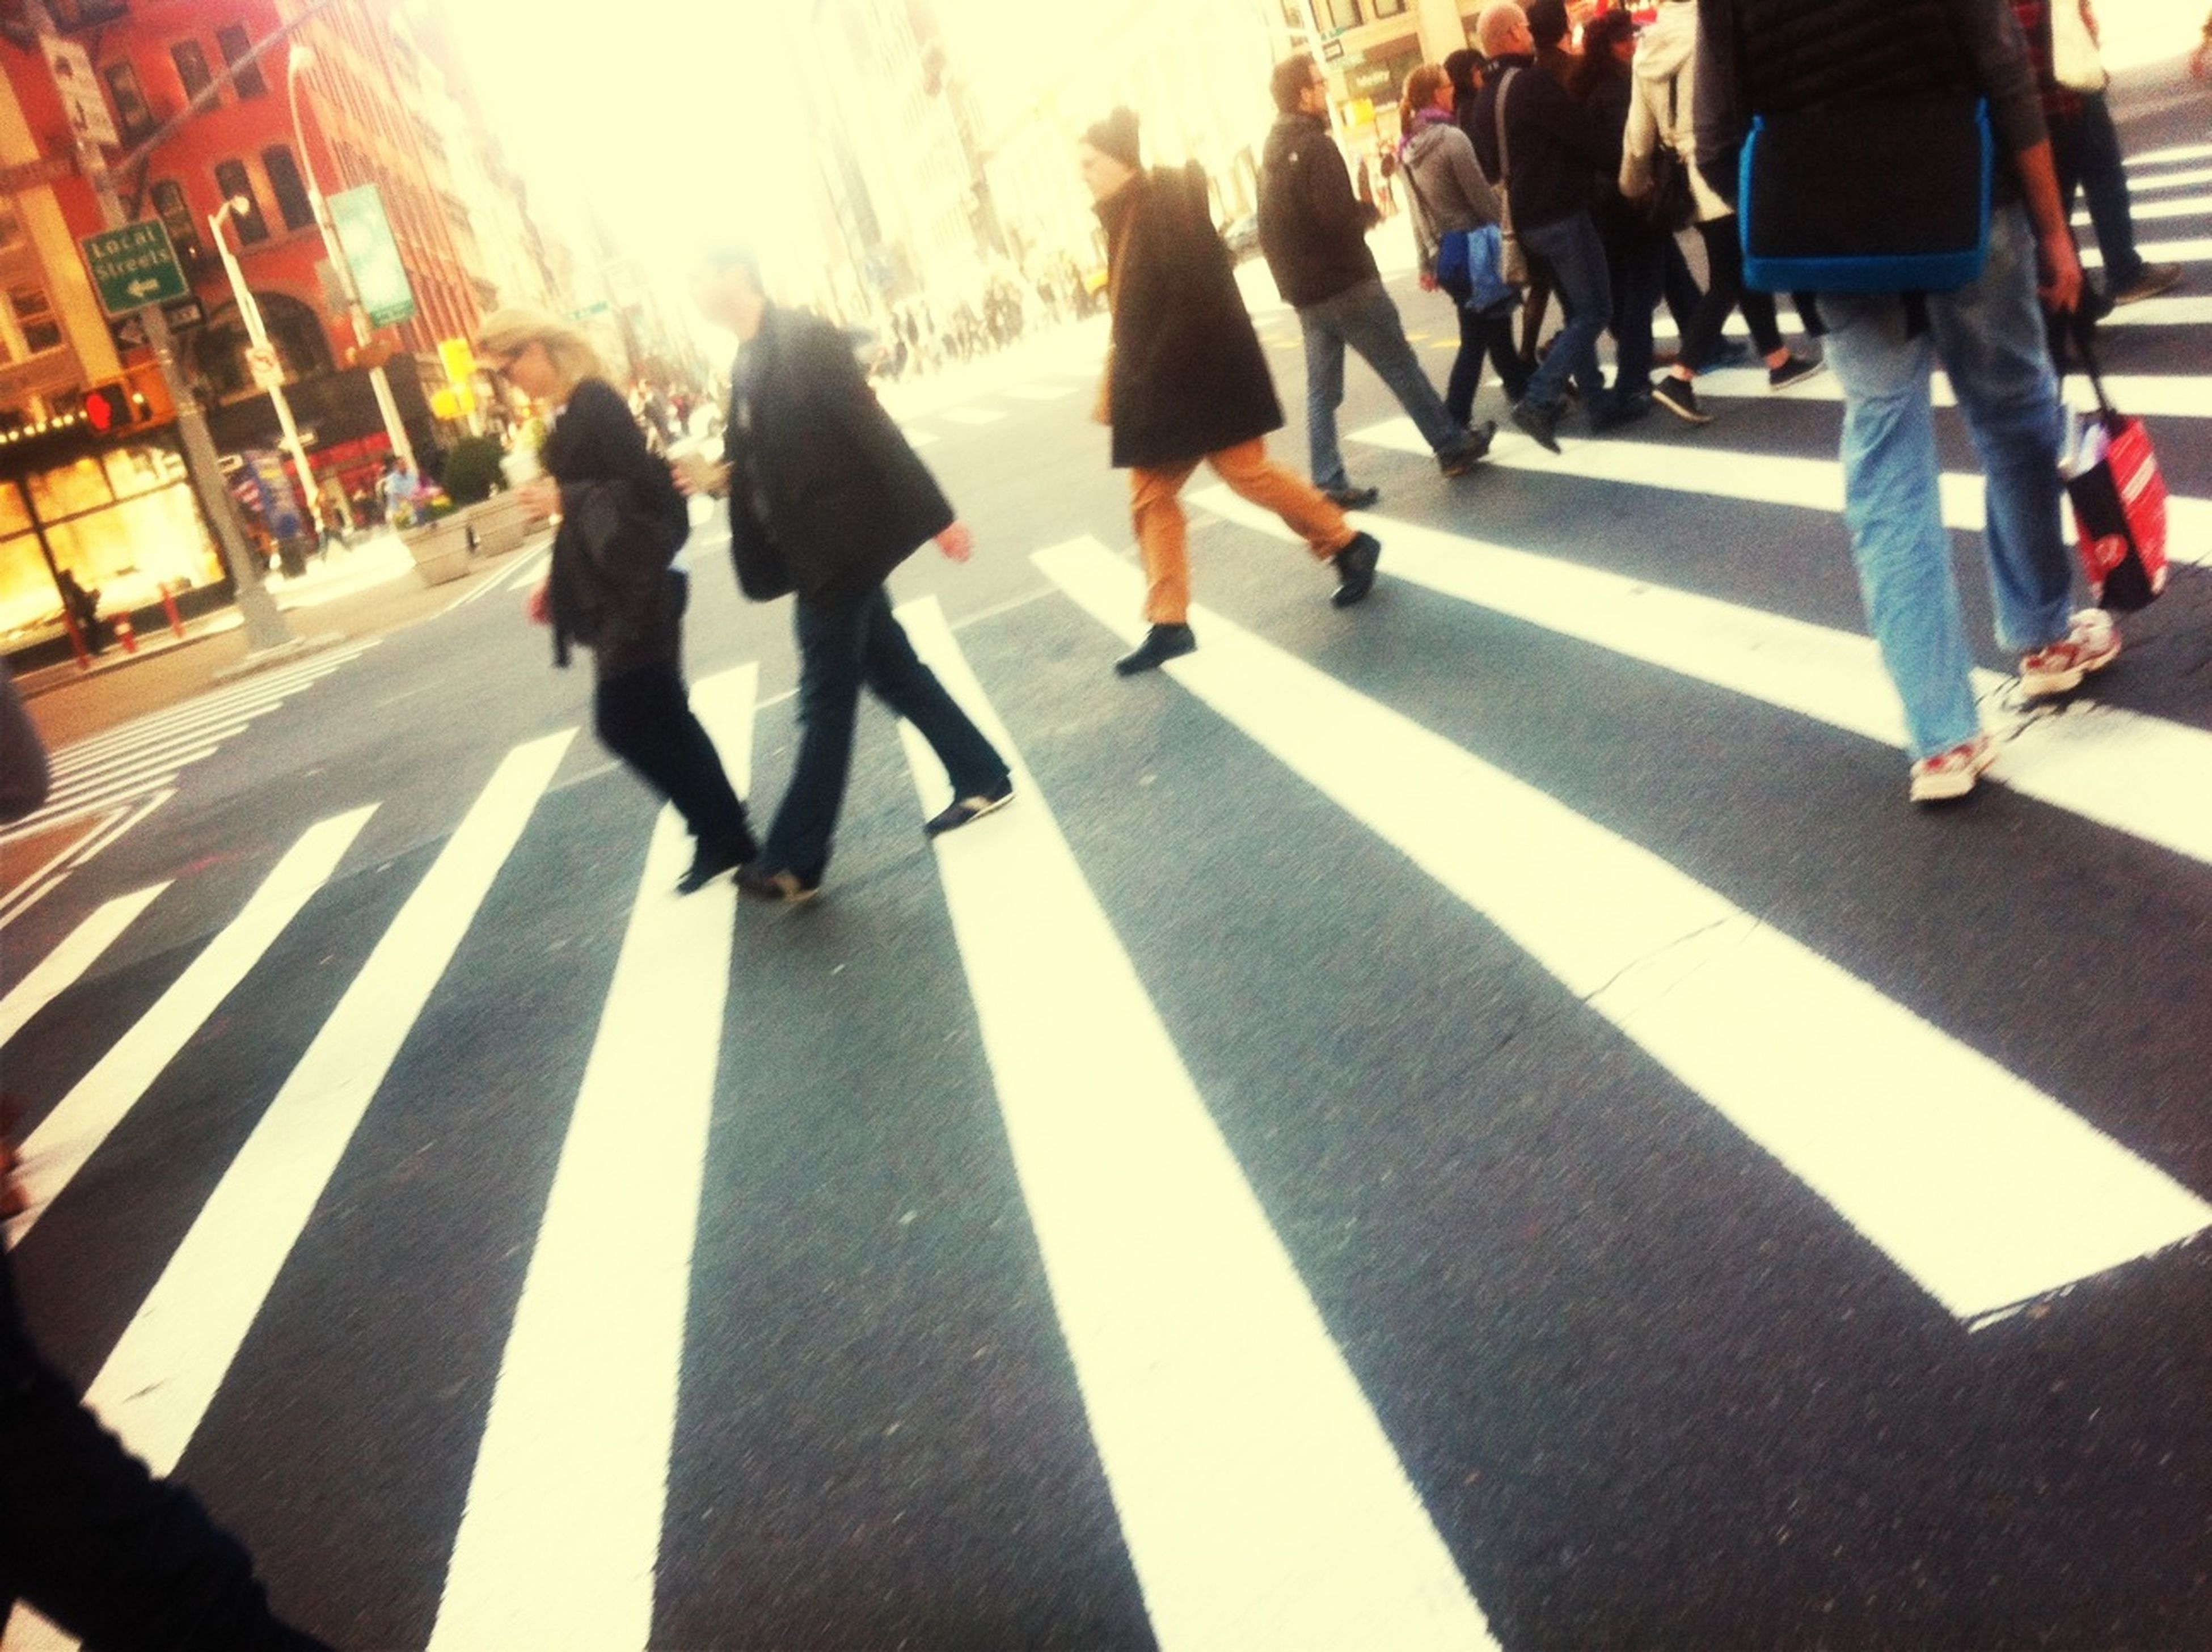 men, lifestyles, walking, person, city life, large group of people, leisure activity, street, city, medium group of people, zebra crossing, full length, togetherness, rear view, on the move, shadow, road marking, group of people, casual clothing